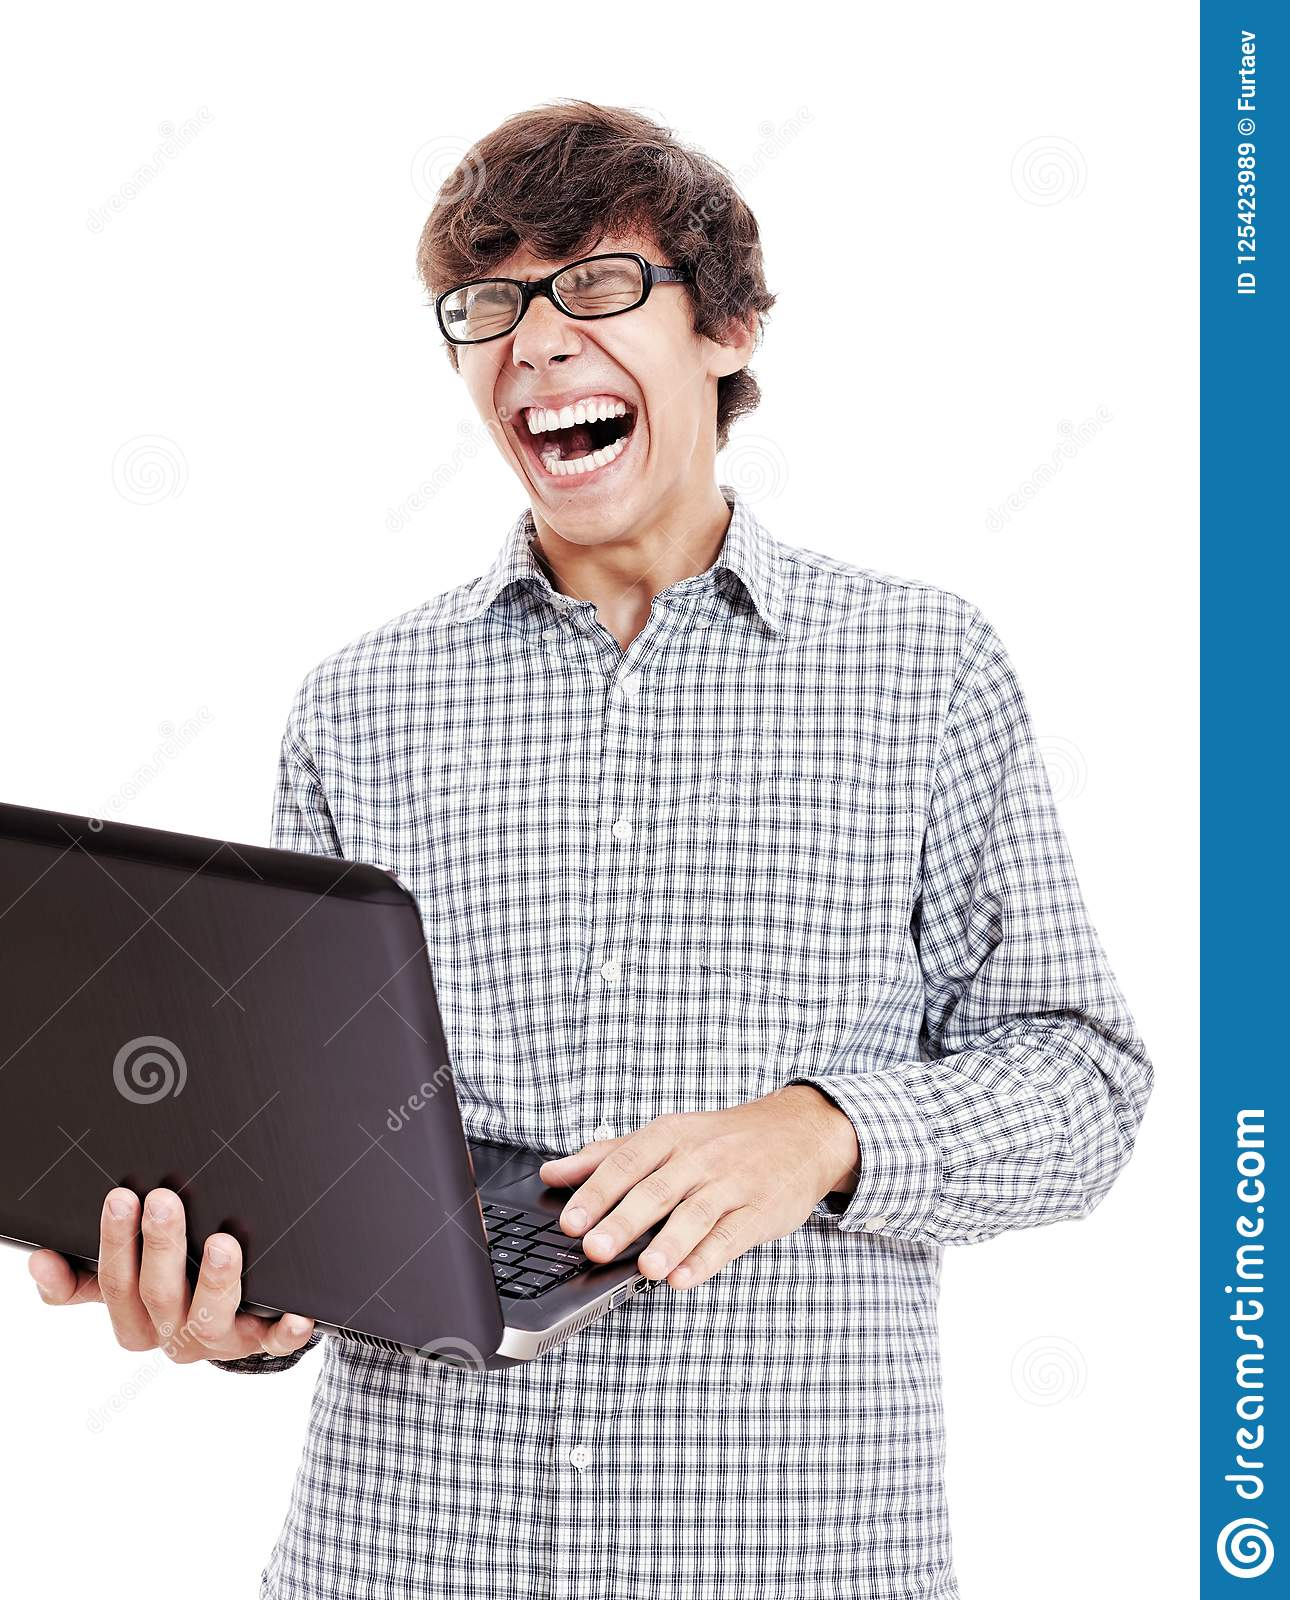 Guy Loudly Laughing With Laptop Stock Image Image Of Geeks Concept 125423989